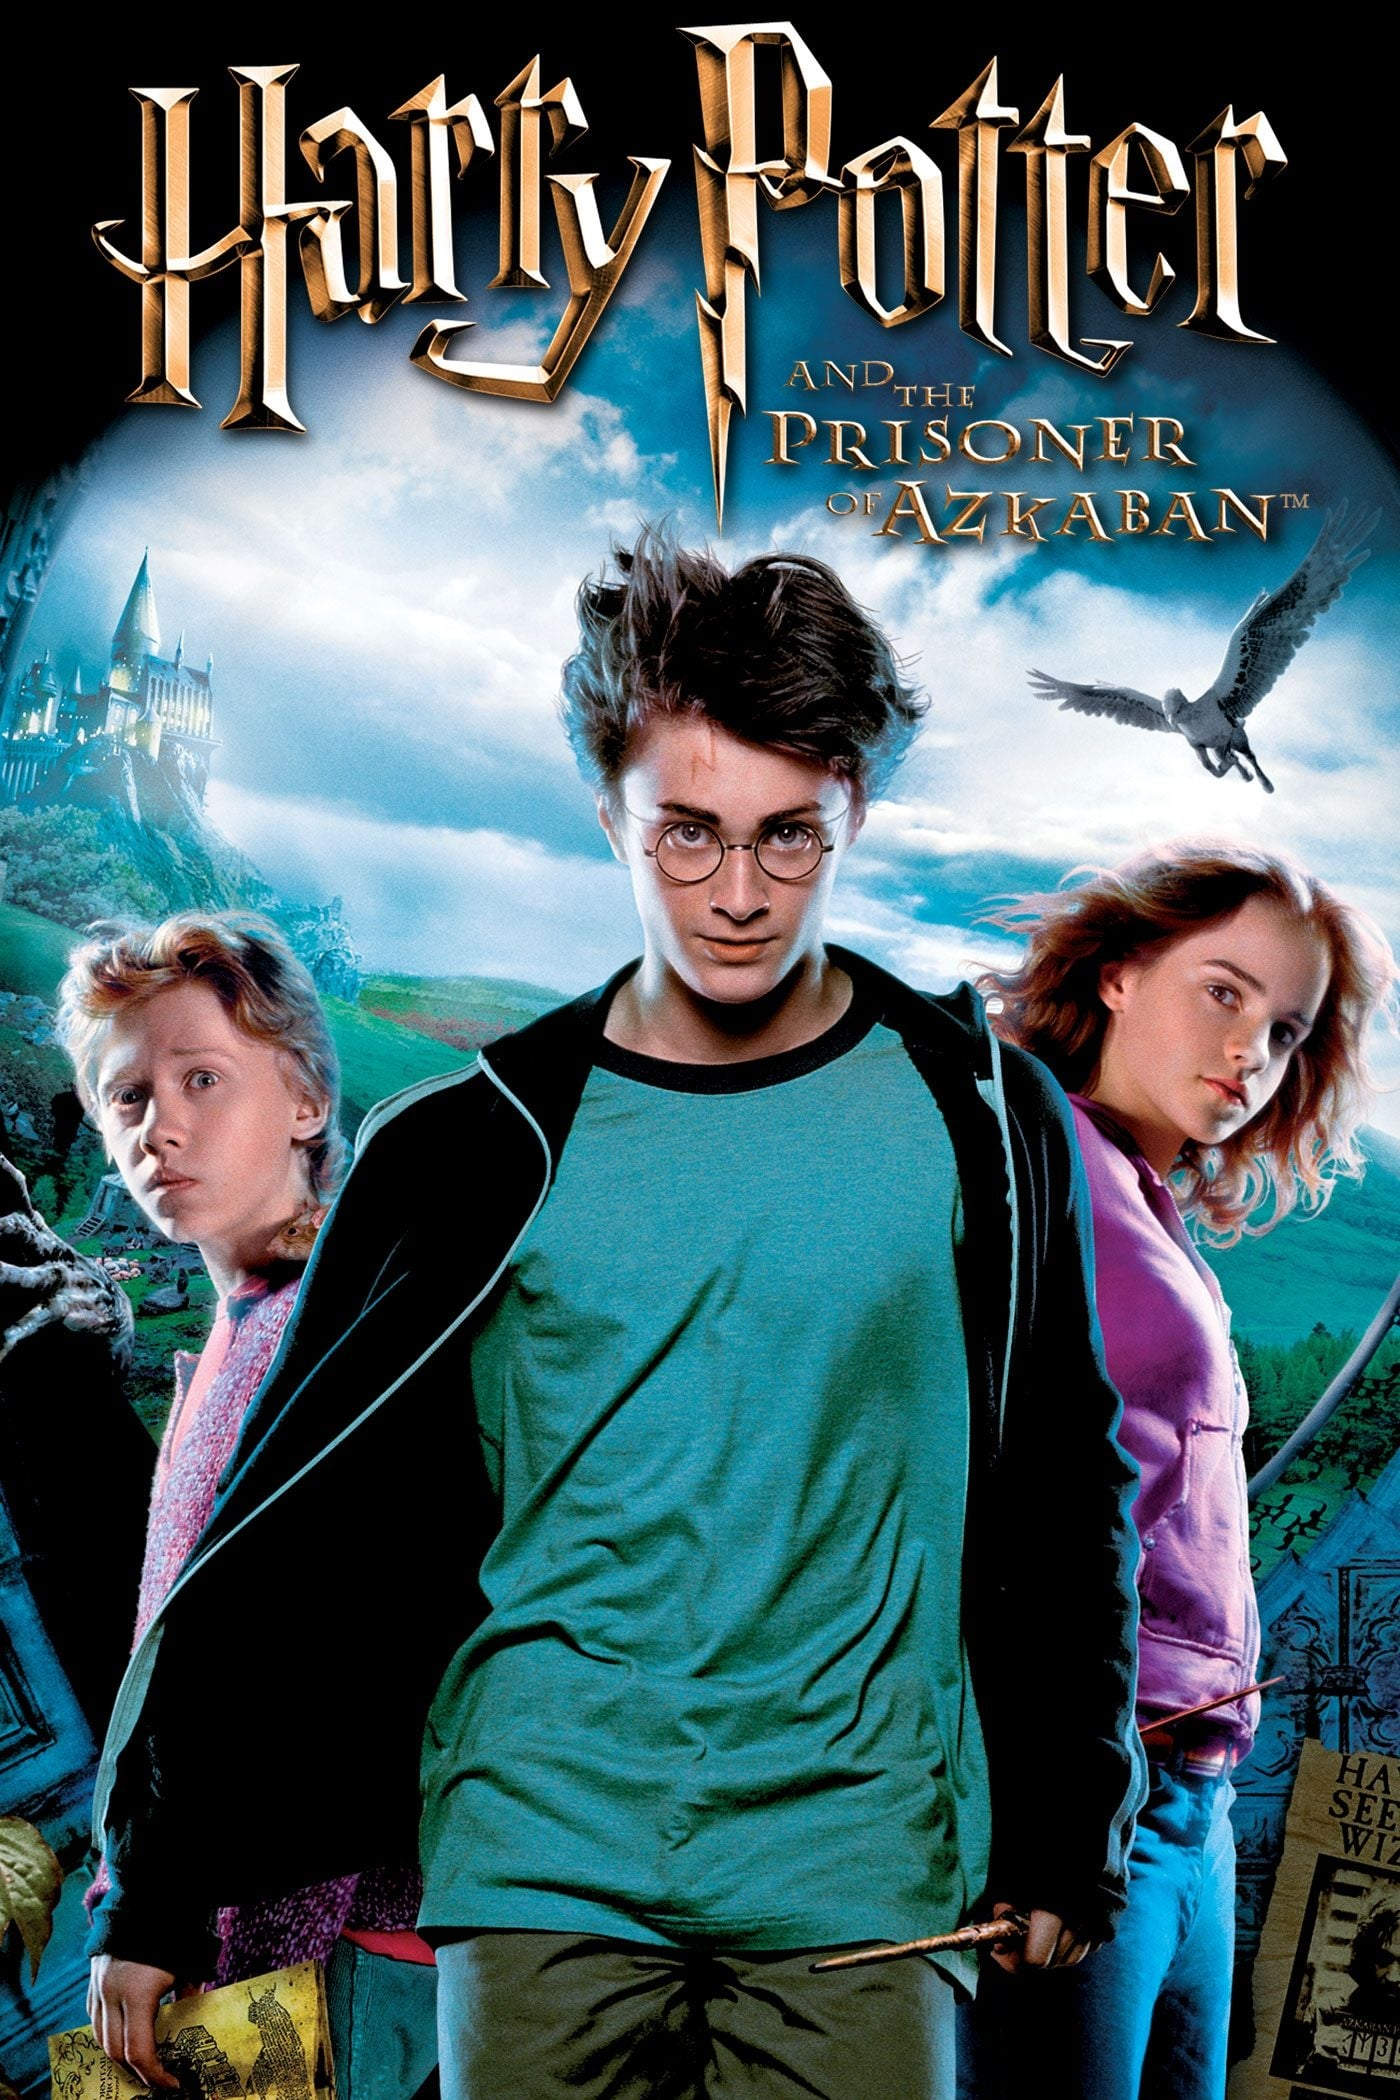 Harry Potter and the Prisoner of Azkaban (film)